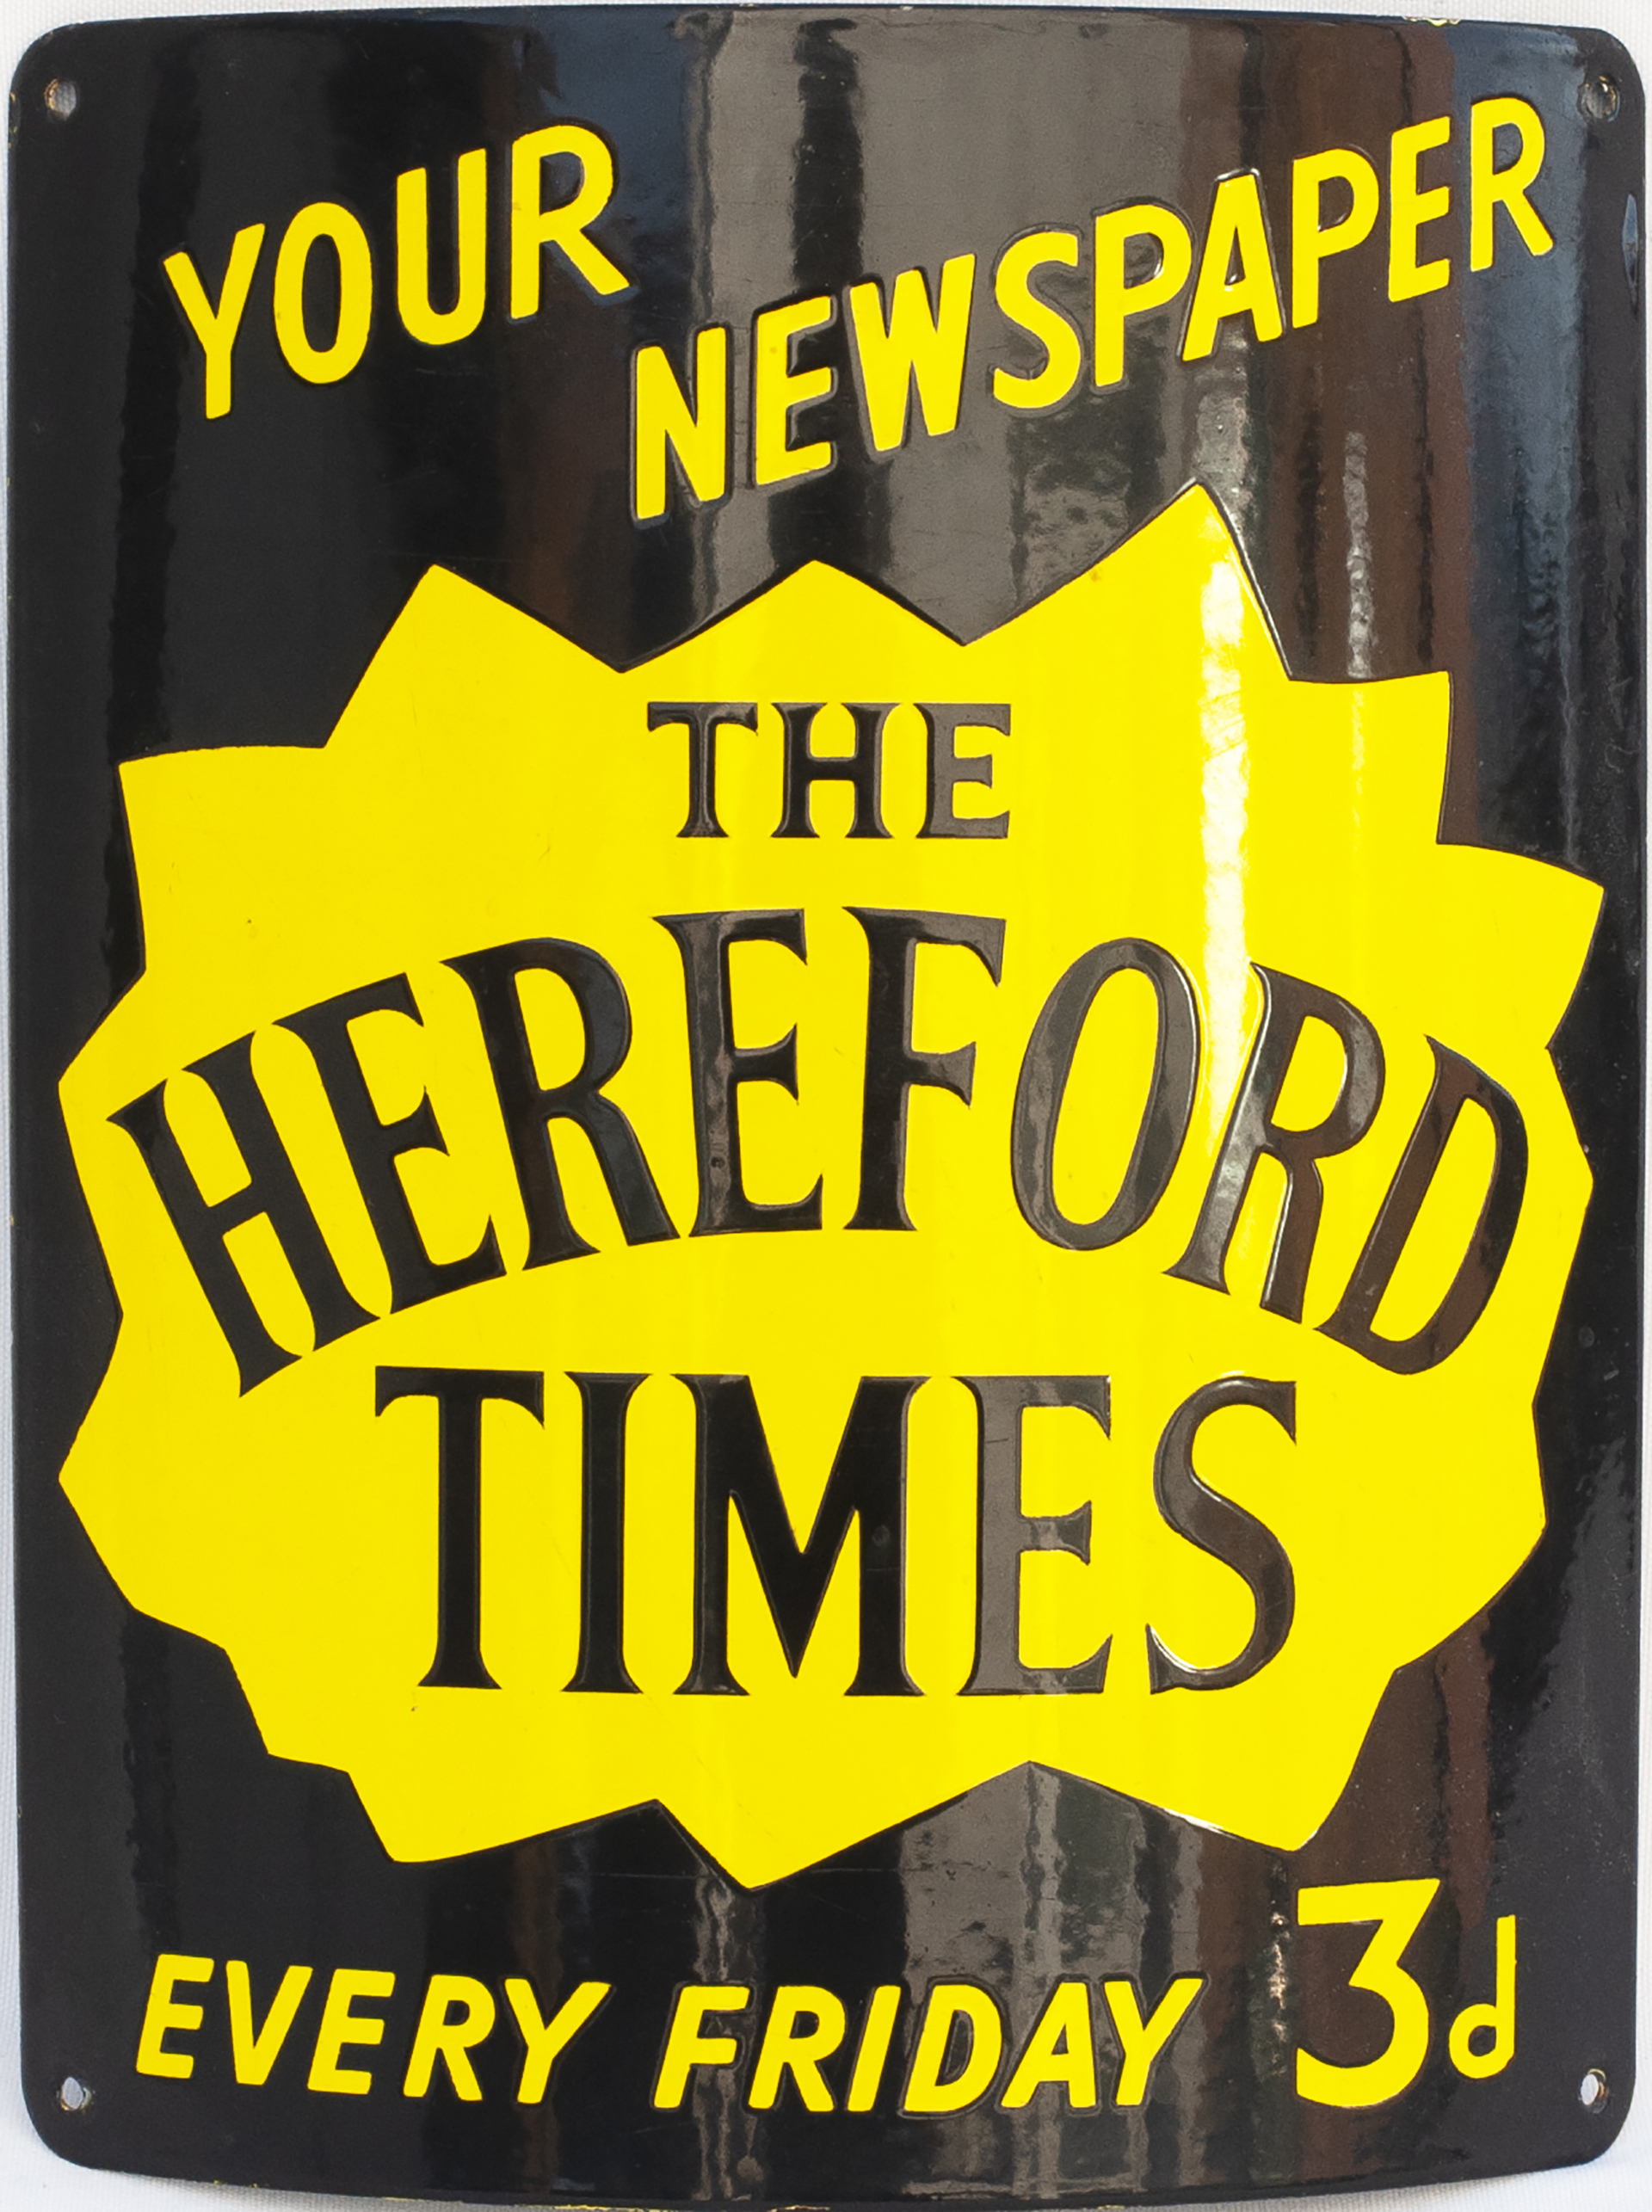 Advertising Enamel Sign YOUR NEWSPAPER THE